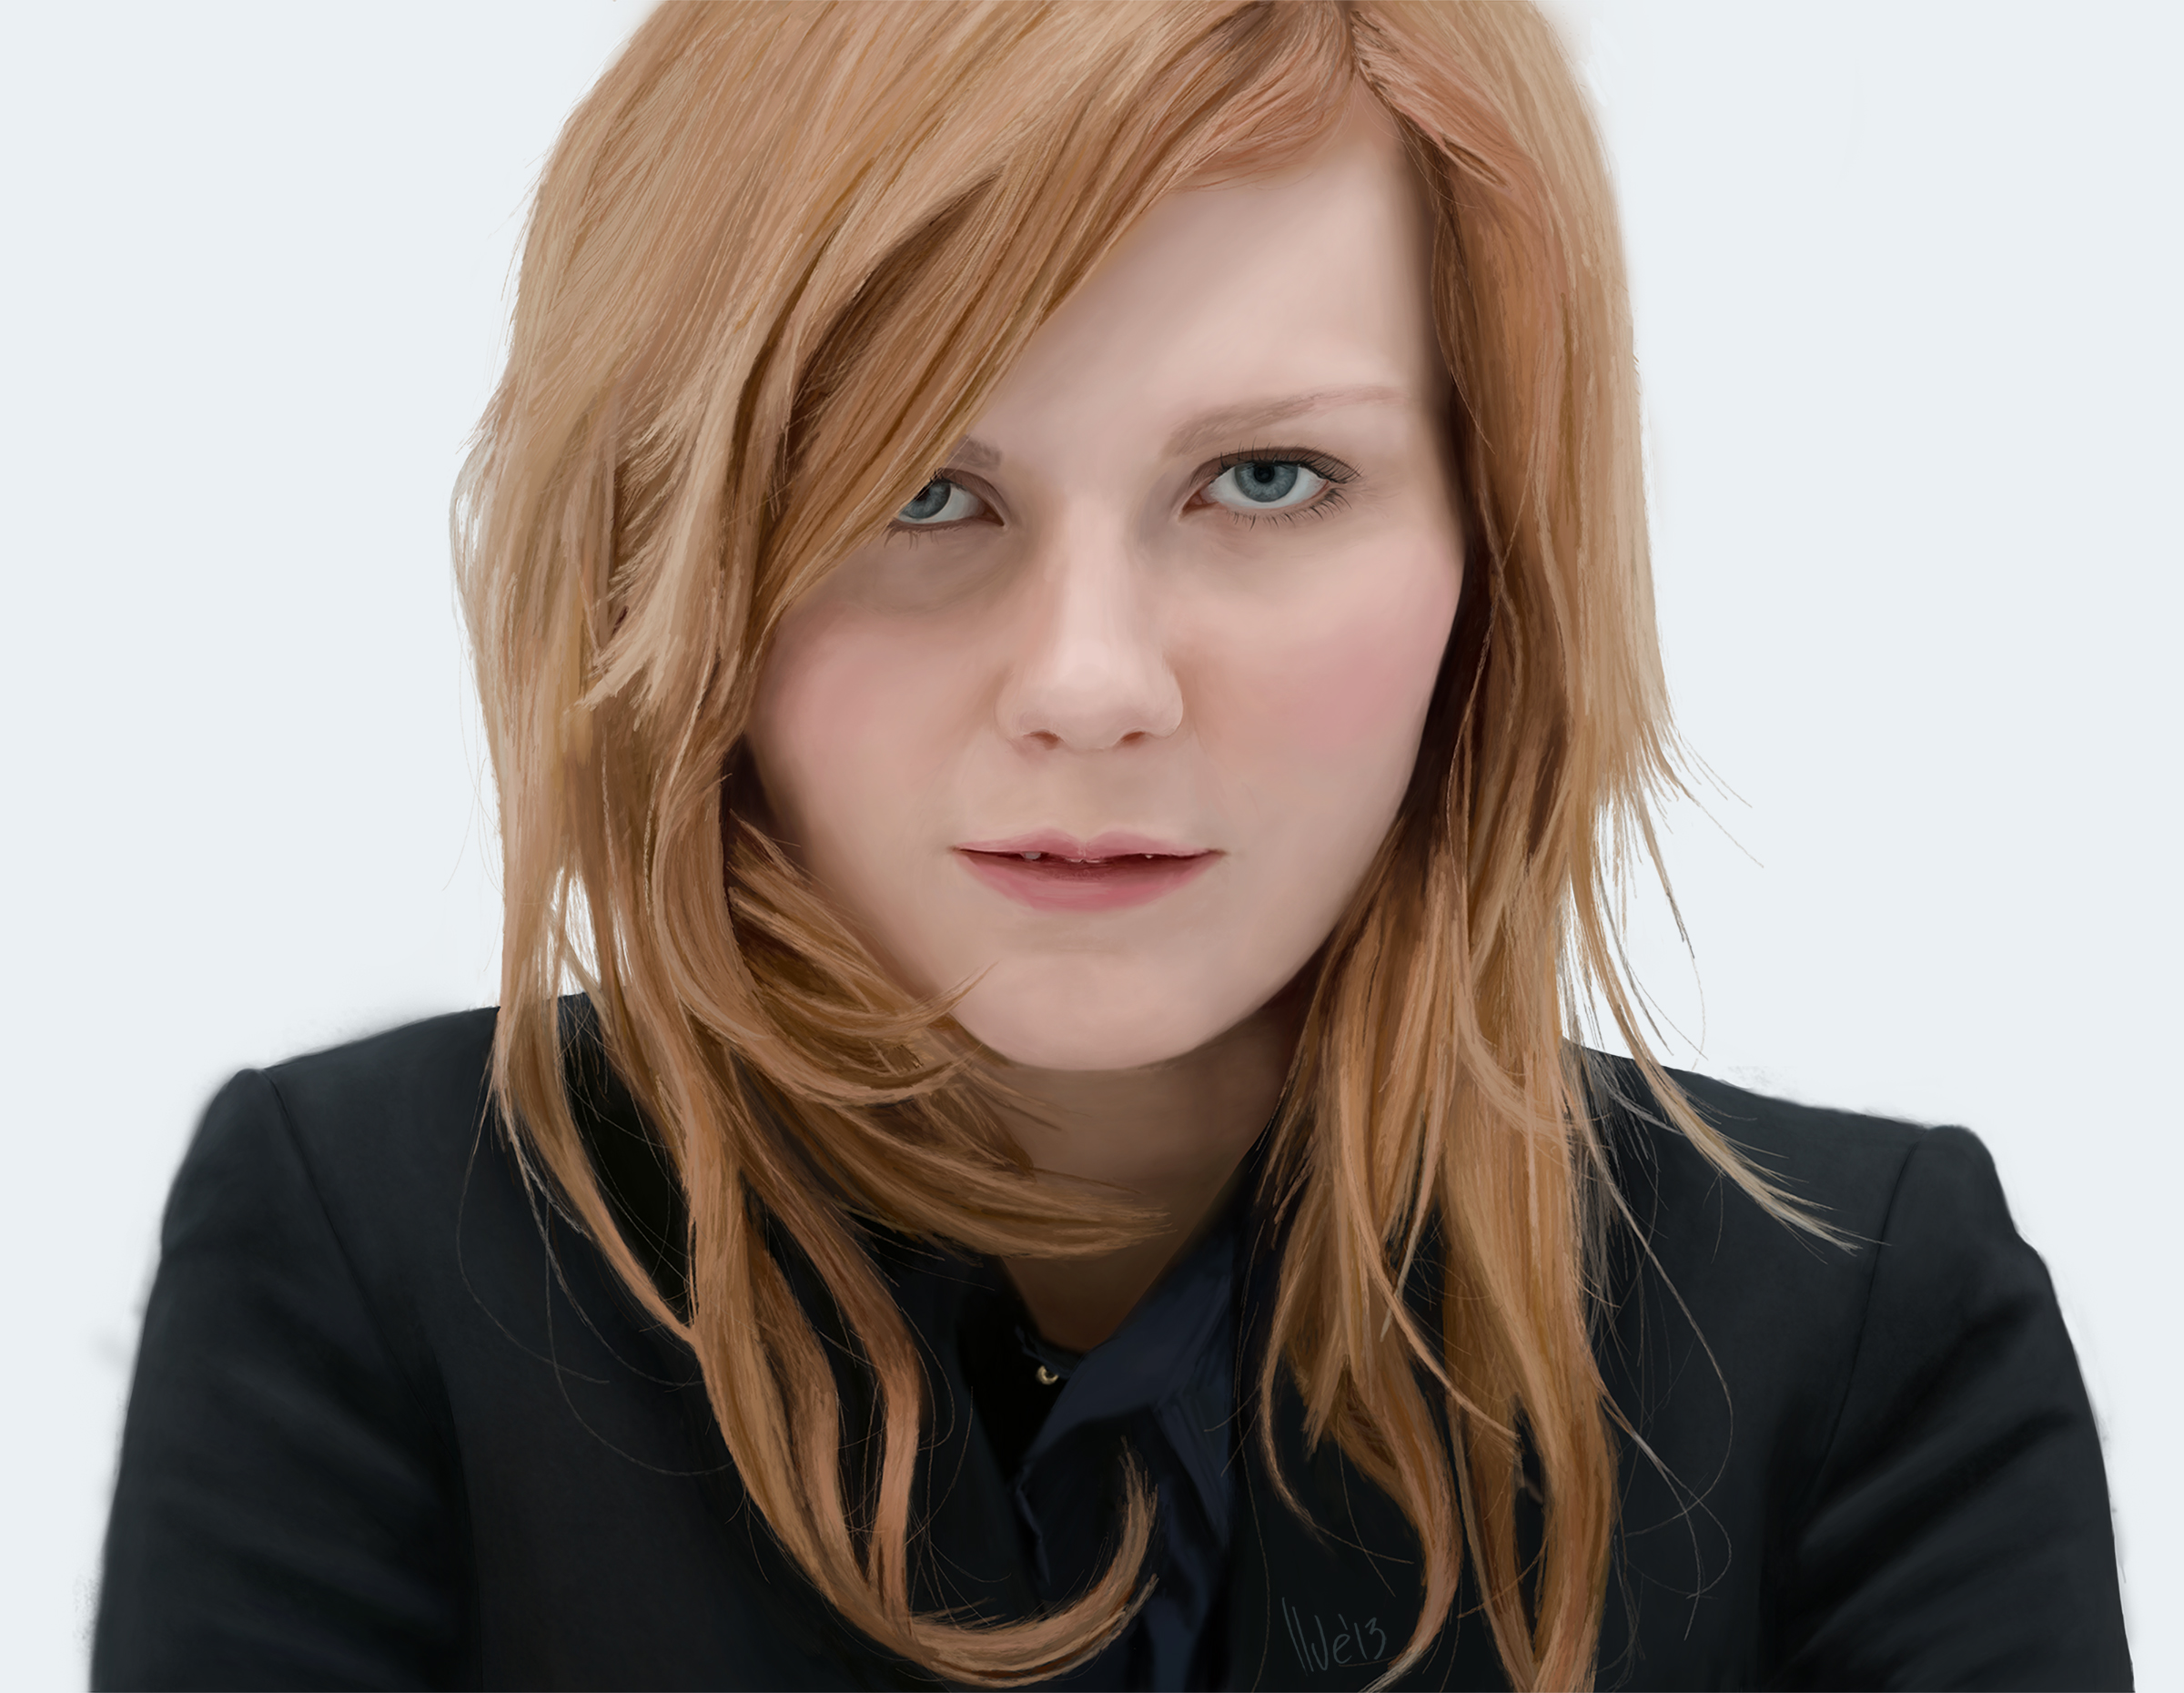 Pictures Kirsten Dunst Potrait Collection 10 Wallpapers